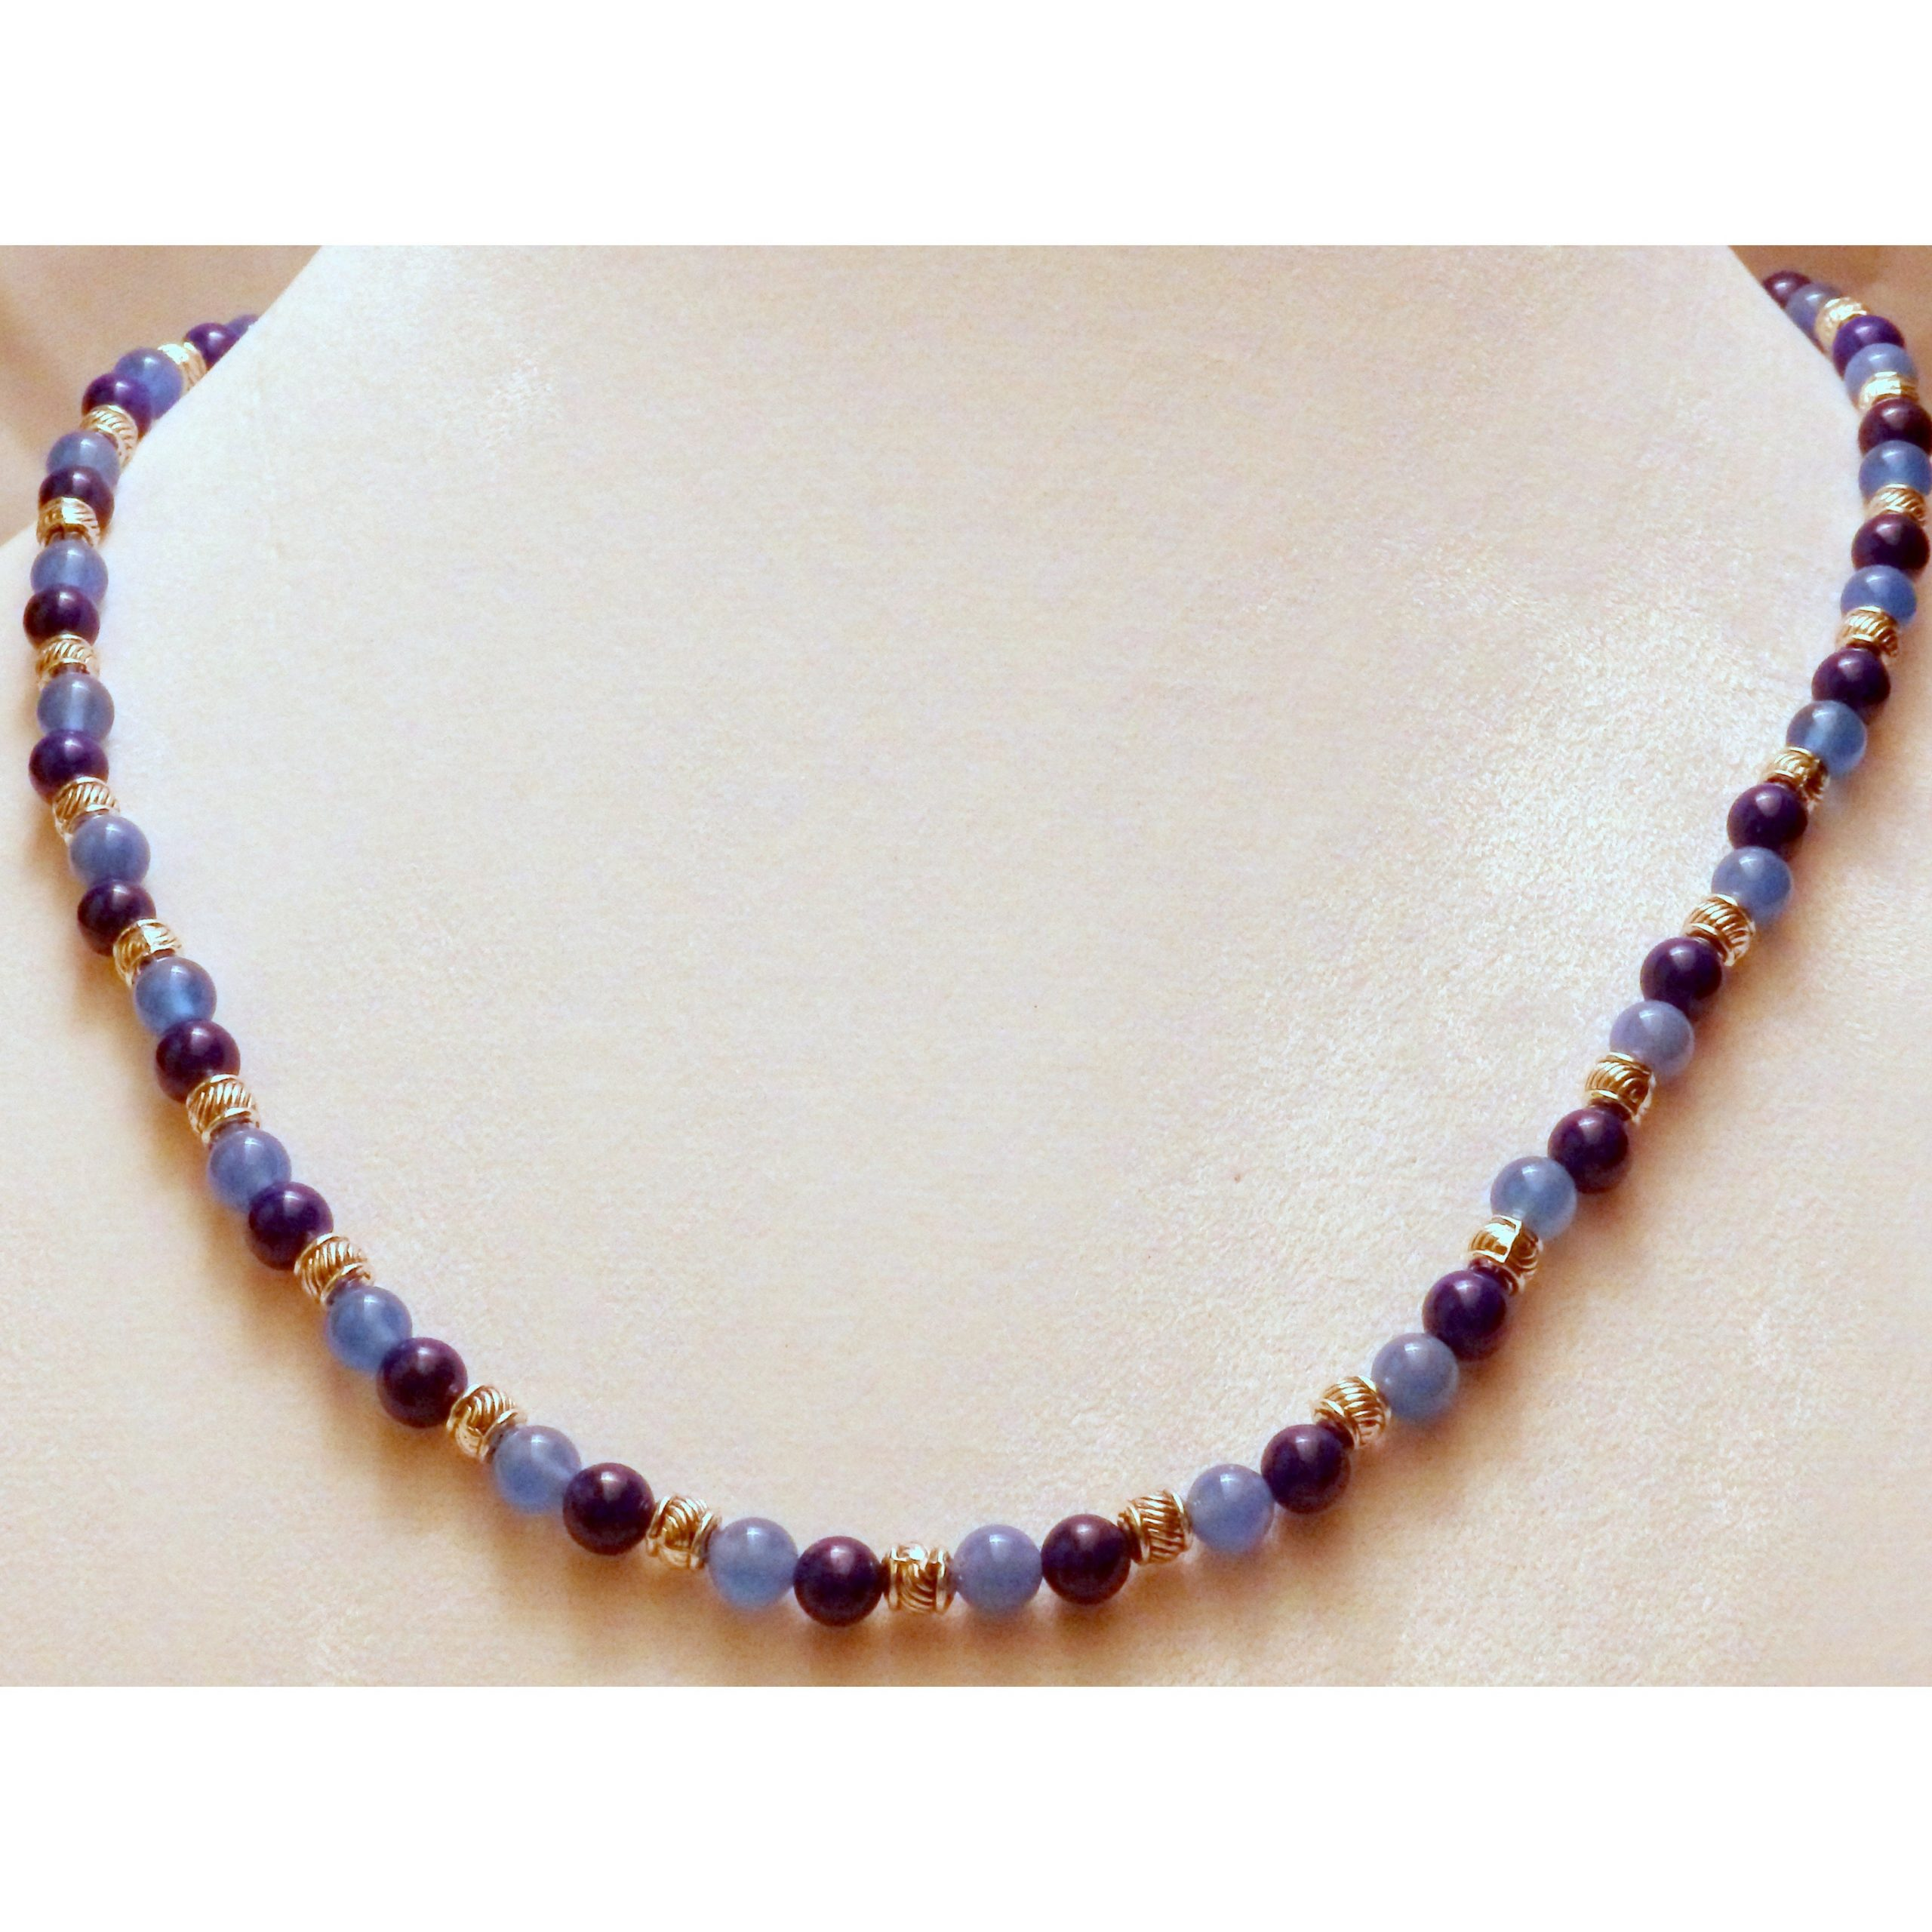 Blue Agate and Howlite Beaded Necklace 855